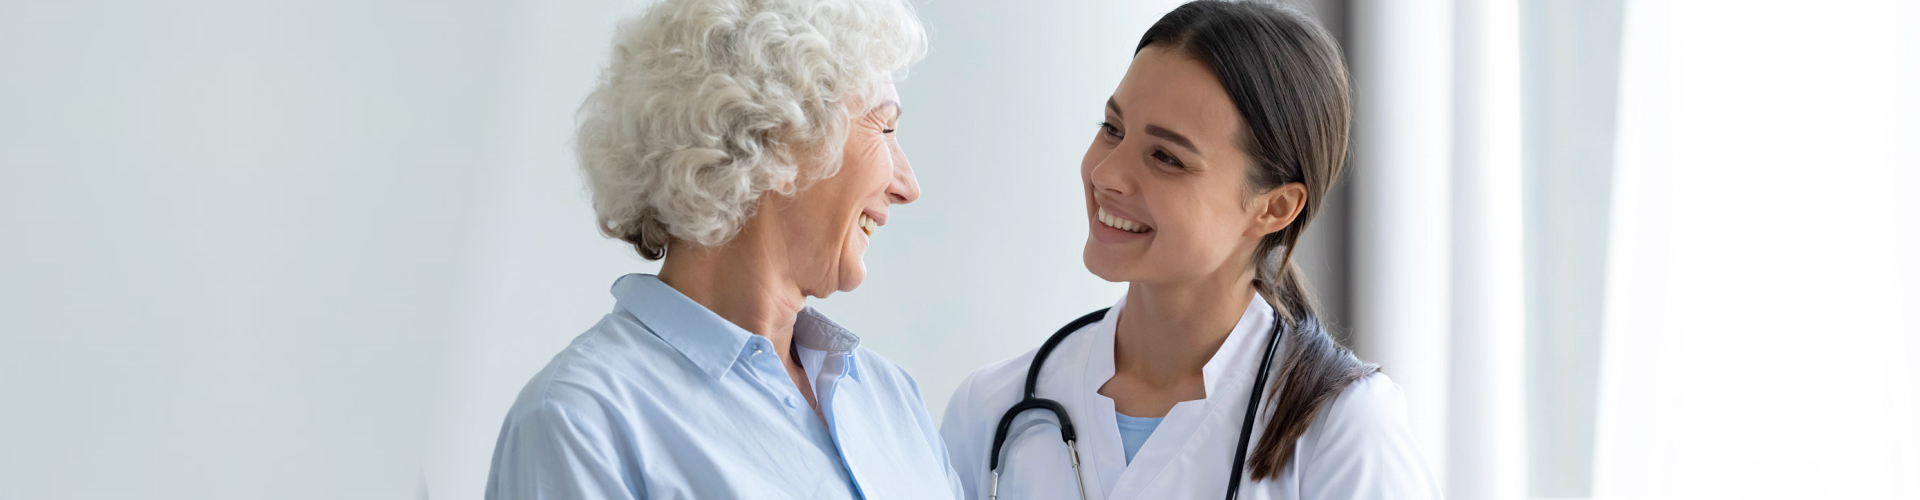 an elderly woman and a nurse smiling at each other